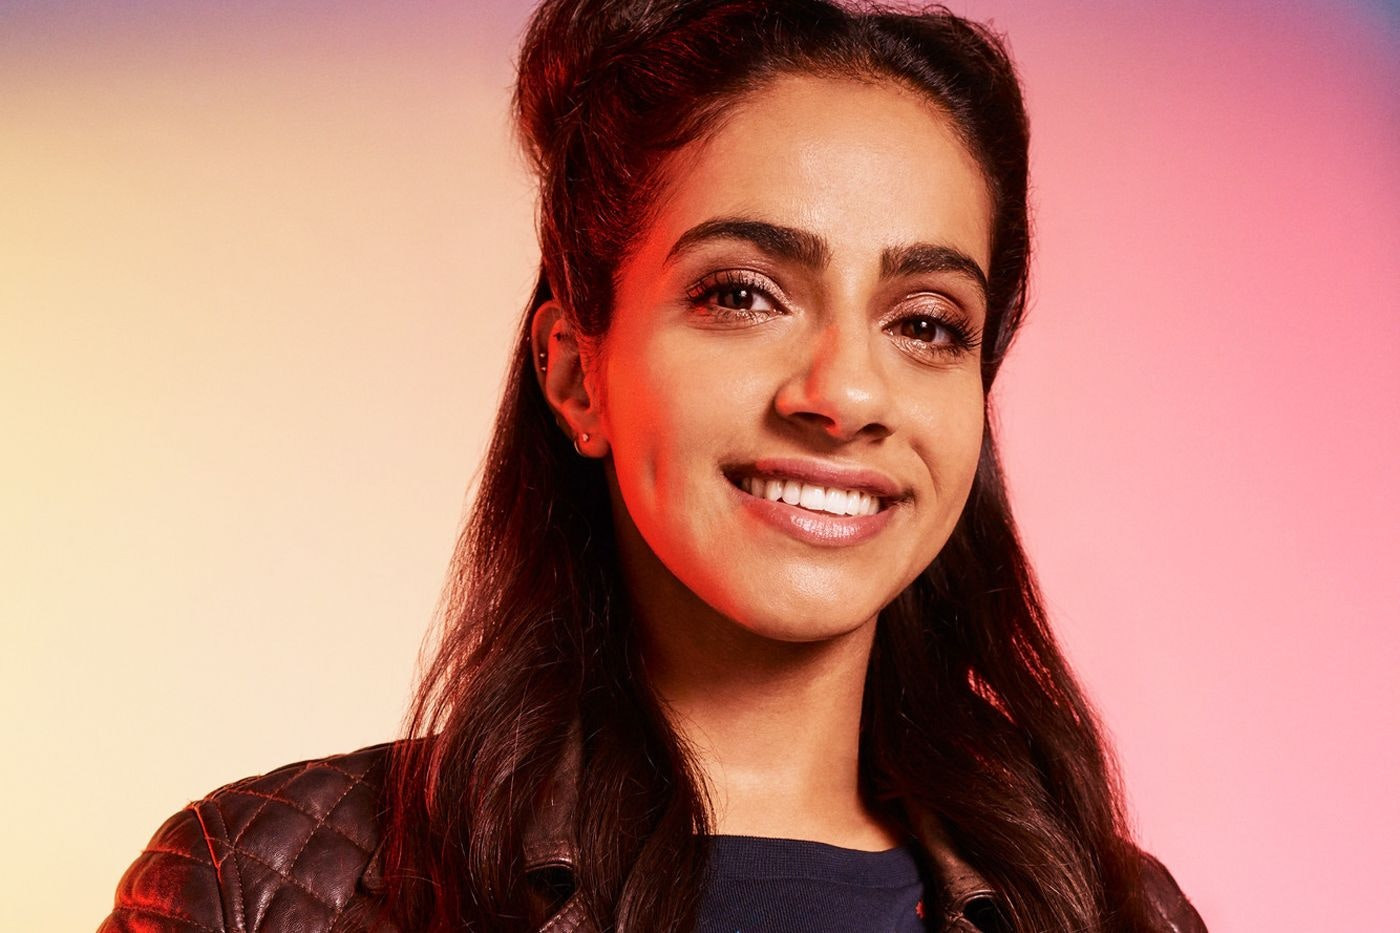 Photos Mandip Gill naked (77 foto and video), Sexy, Cleavage, Selfie, butt 2017